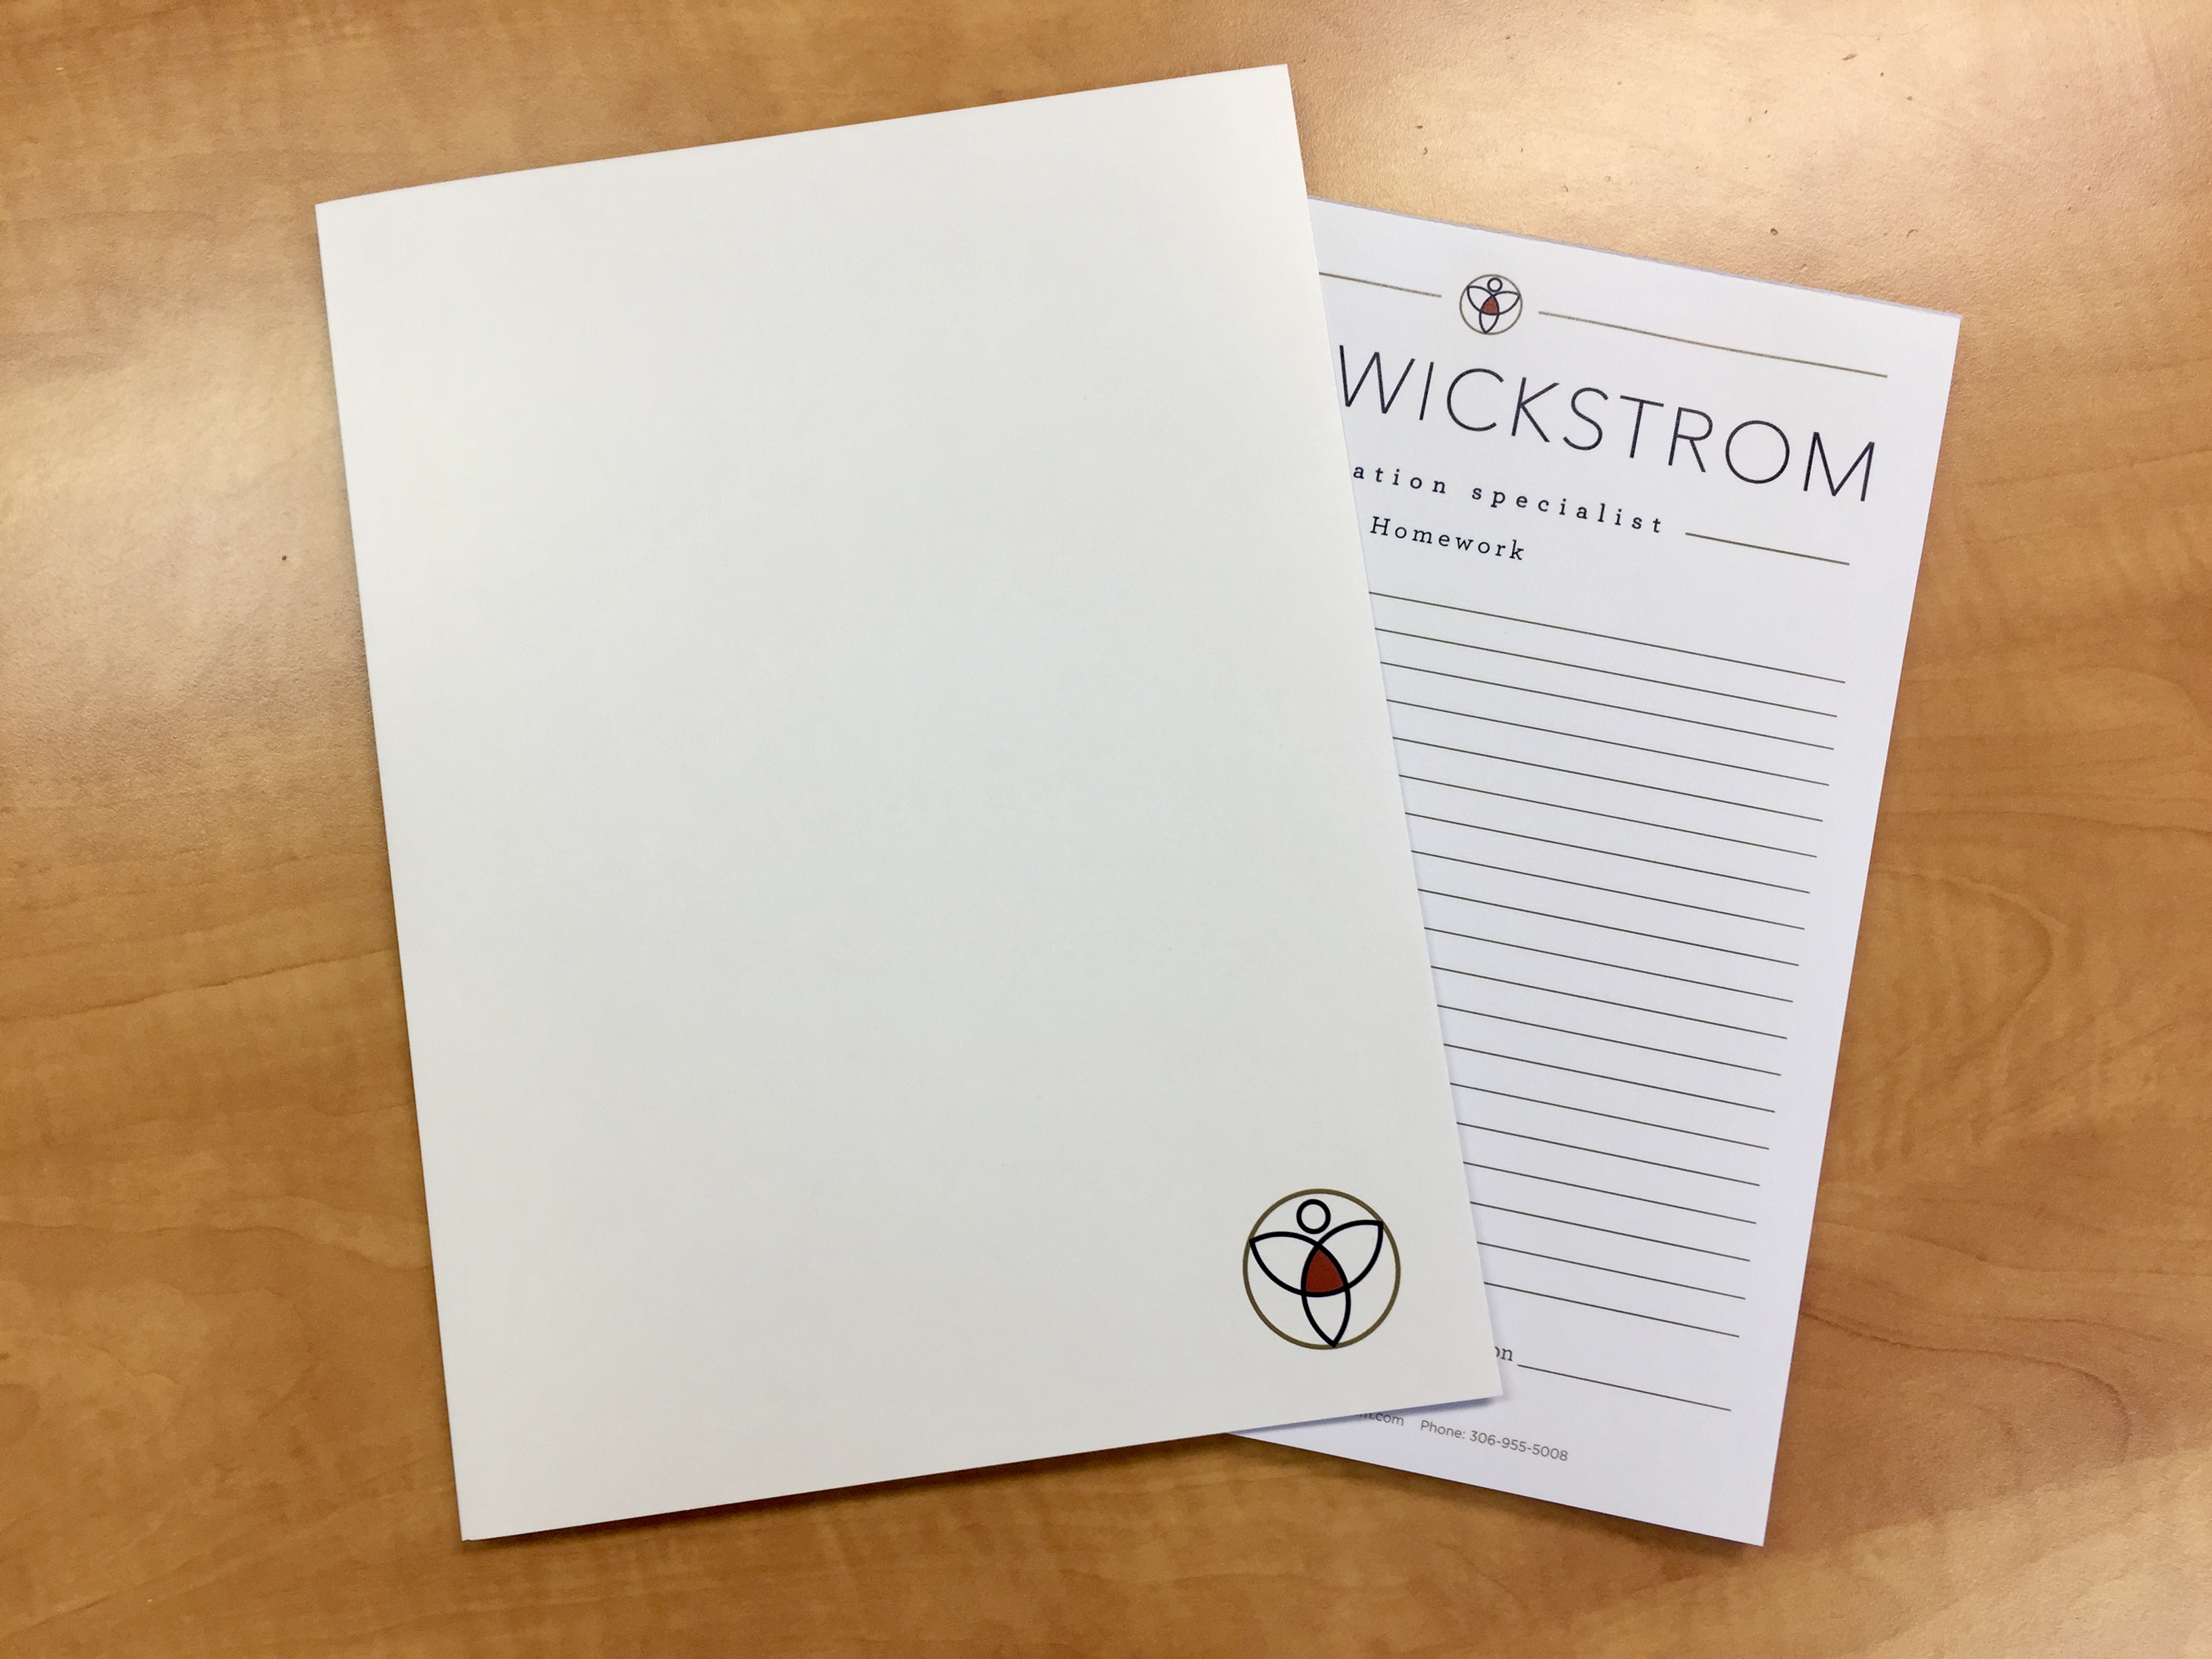 Presentation folders – Lana Wickstrom